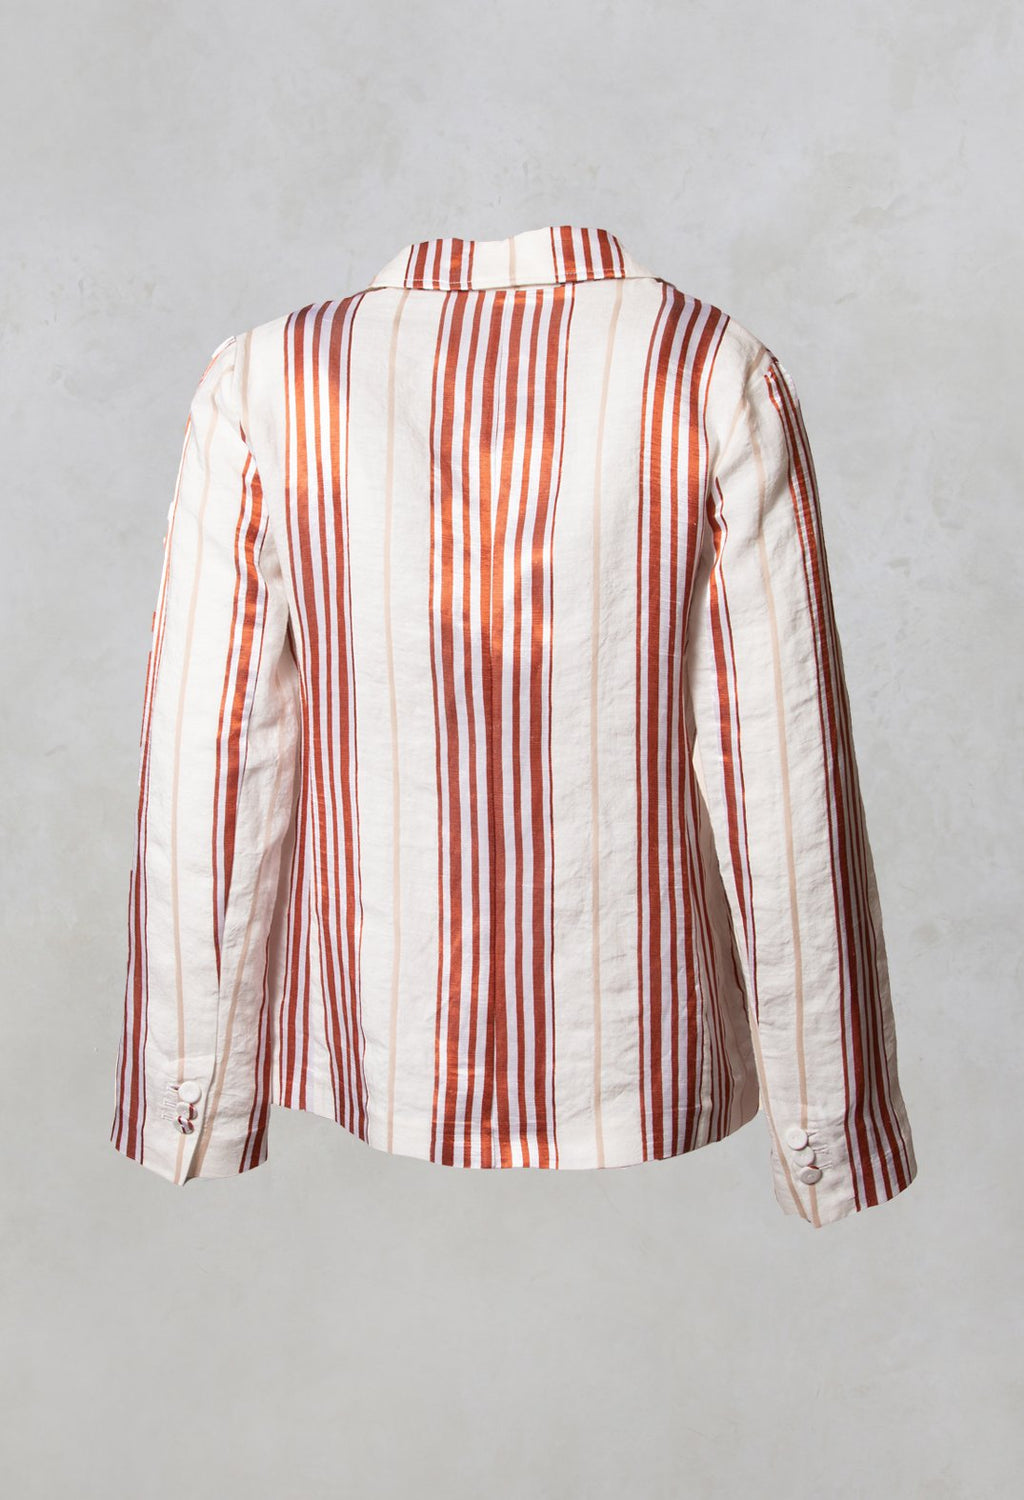 Streaked Summer Jacket in Naturale / Brick